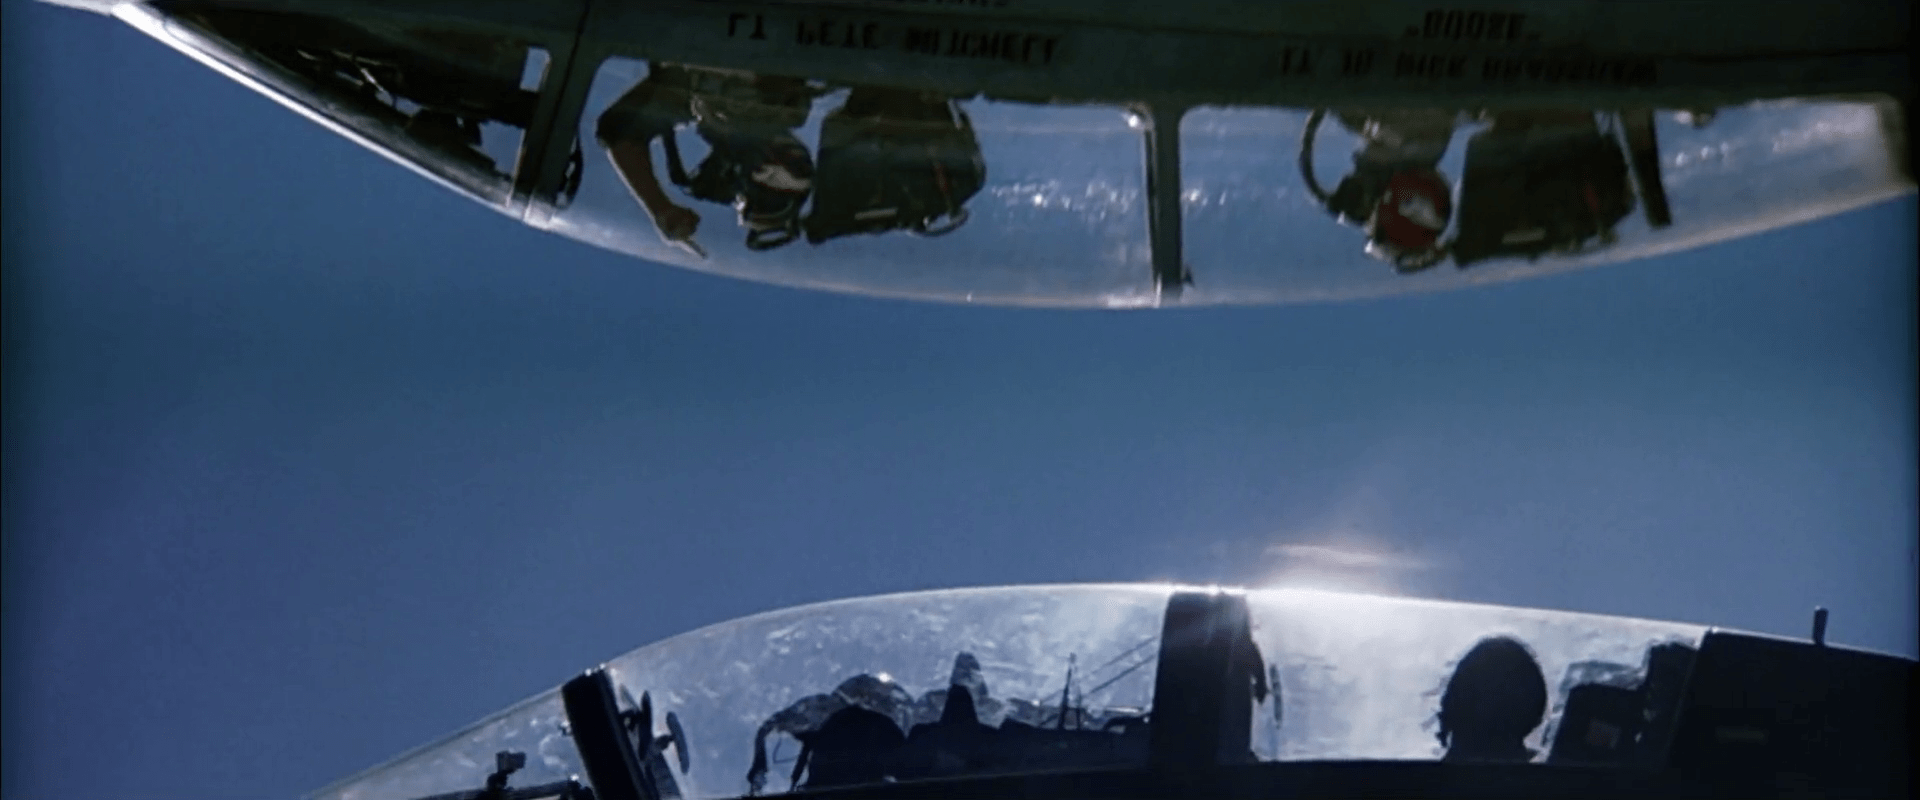 'Leave the Top Gun Quotes to Us' – US Navy Not Happy the Air Force is Muscling in on Top Gun: Maverick